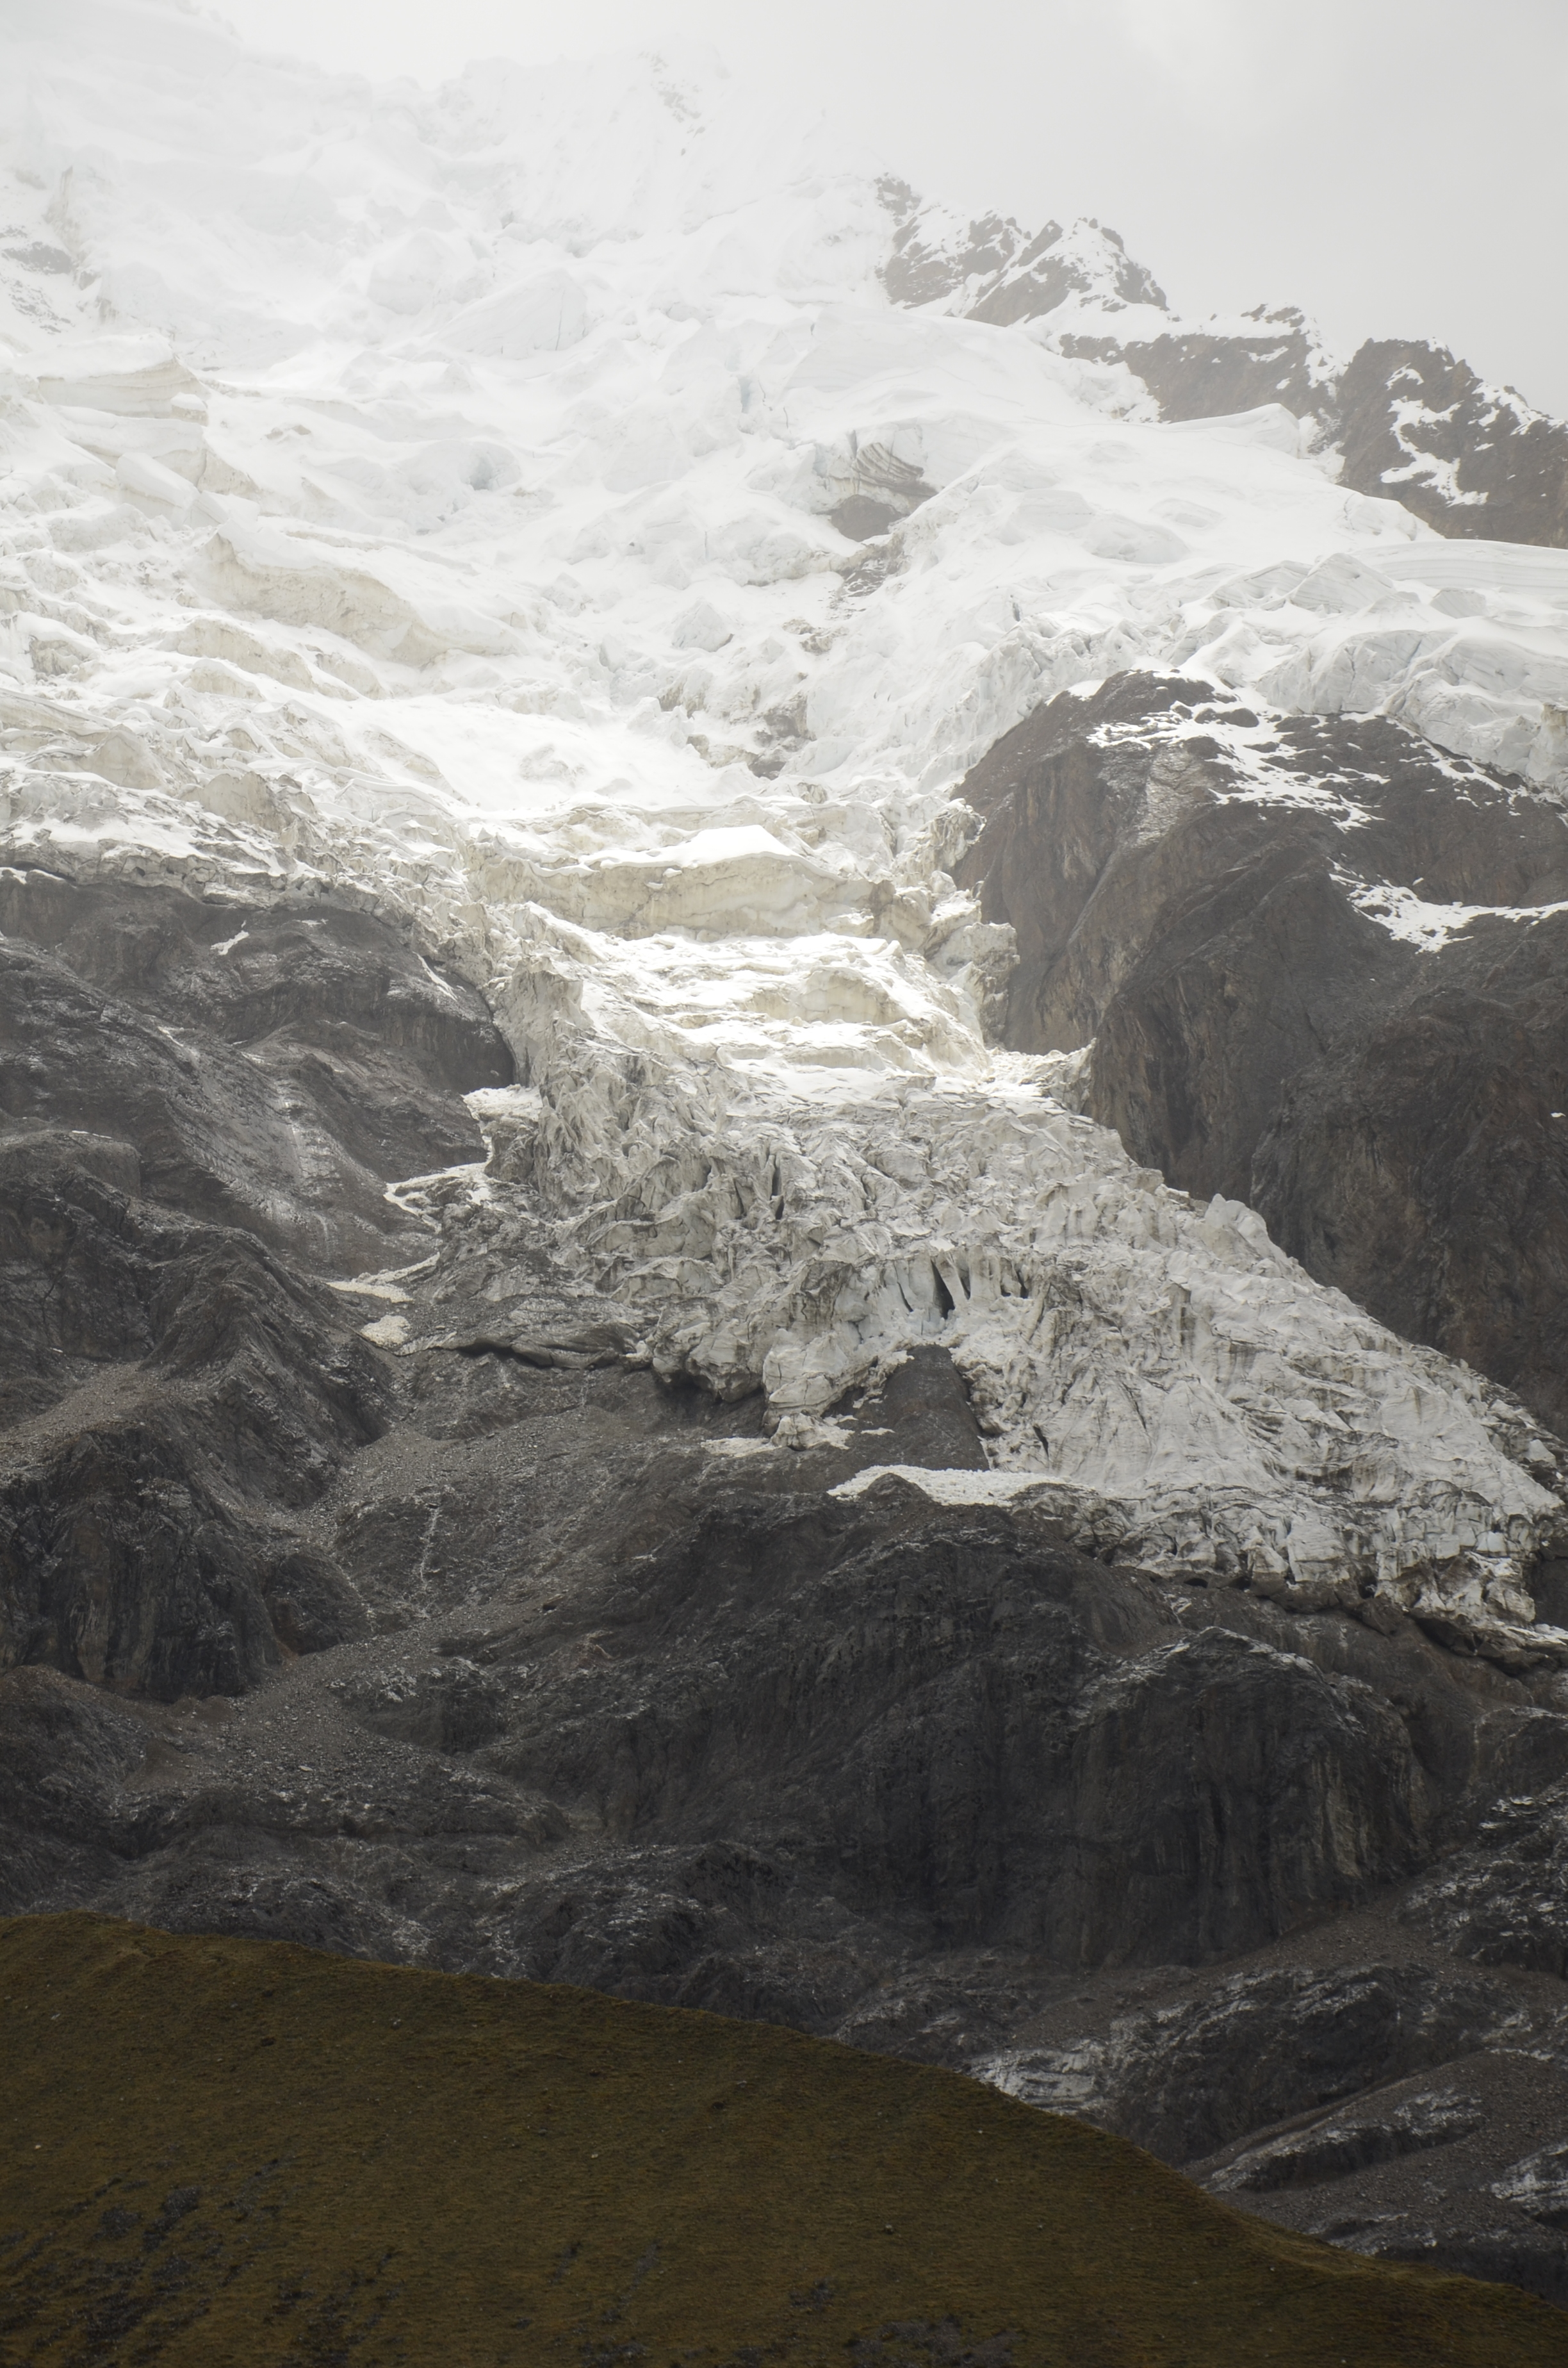 Another section of glacier